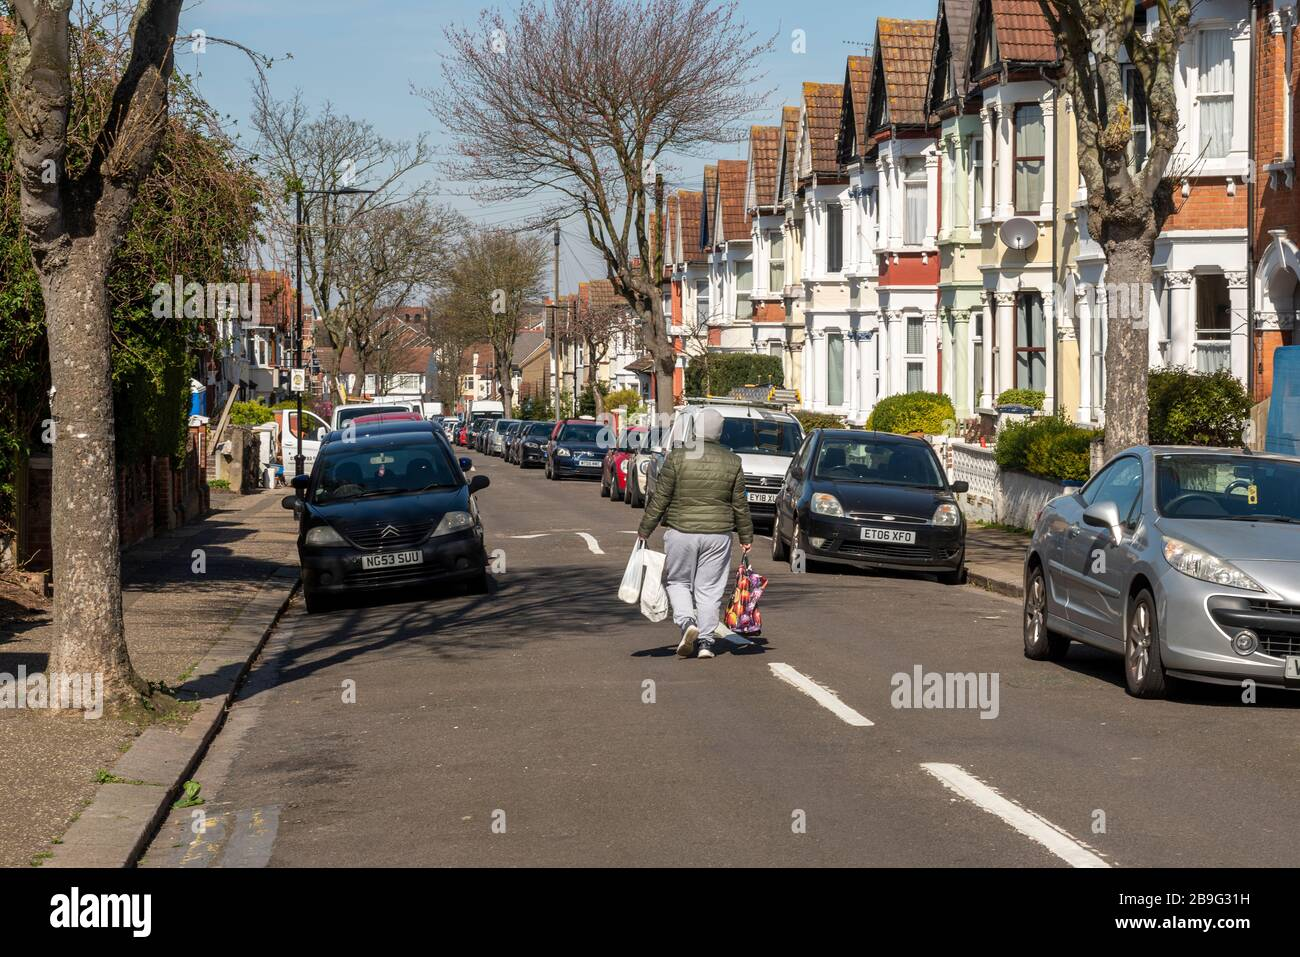 westcliff-on-sea-essex-uk-24th-march-2020-on-the-first-day-of-lockdown-in-the-uk-a-shopper-is-walking-home-in-the-middle-of-the-road-to-make-sure-of-avoiding-contact-with-other-people-during-the-covid-19-coronavirus-pandemic-outbreak-social-distancing-2B9G31H.jpg